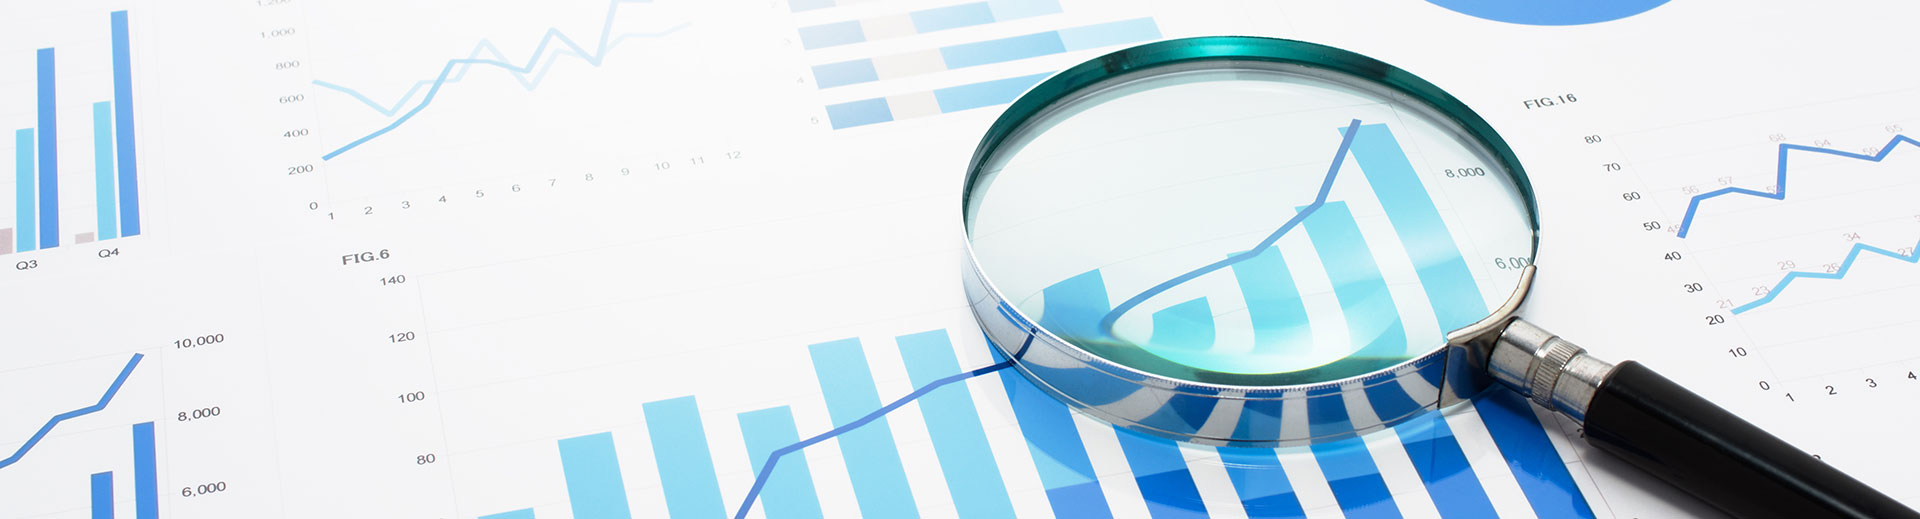 Photo of magnifying glass over financial reports